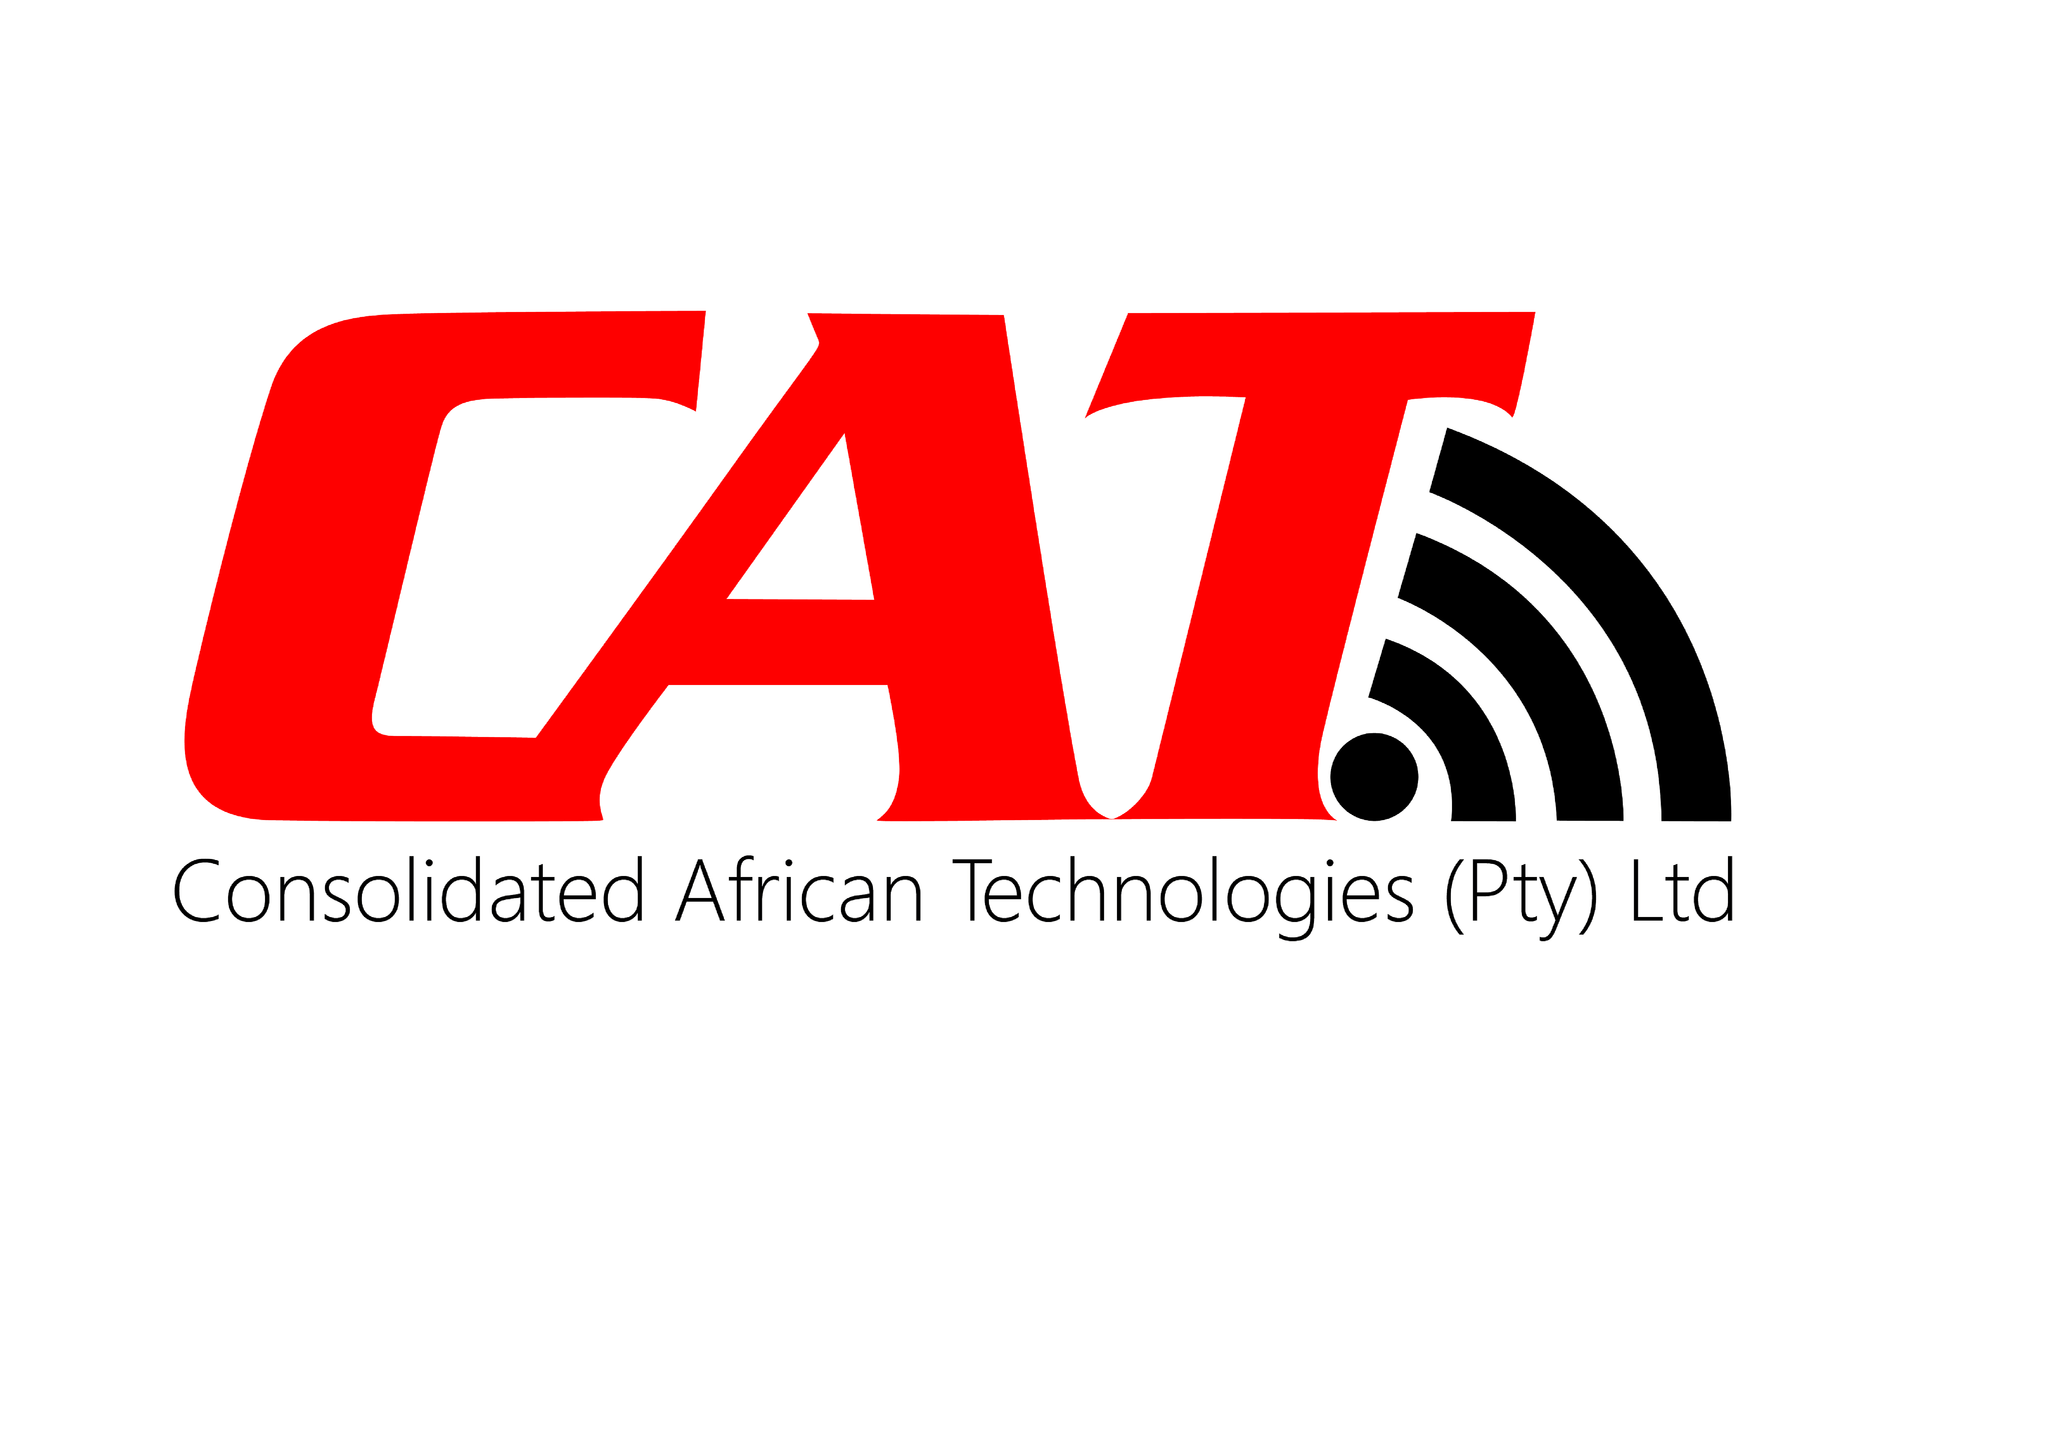 Consolidated African Technologies Pty Ltd